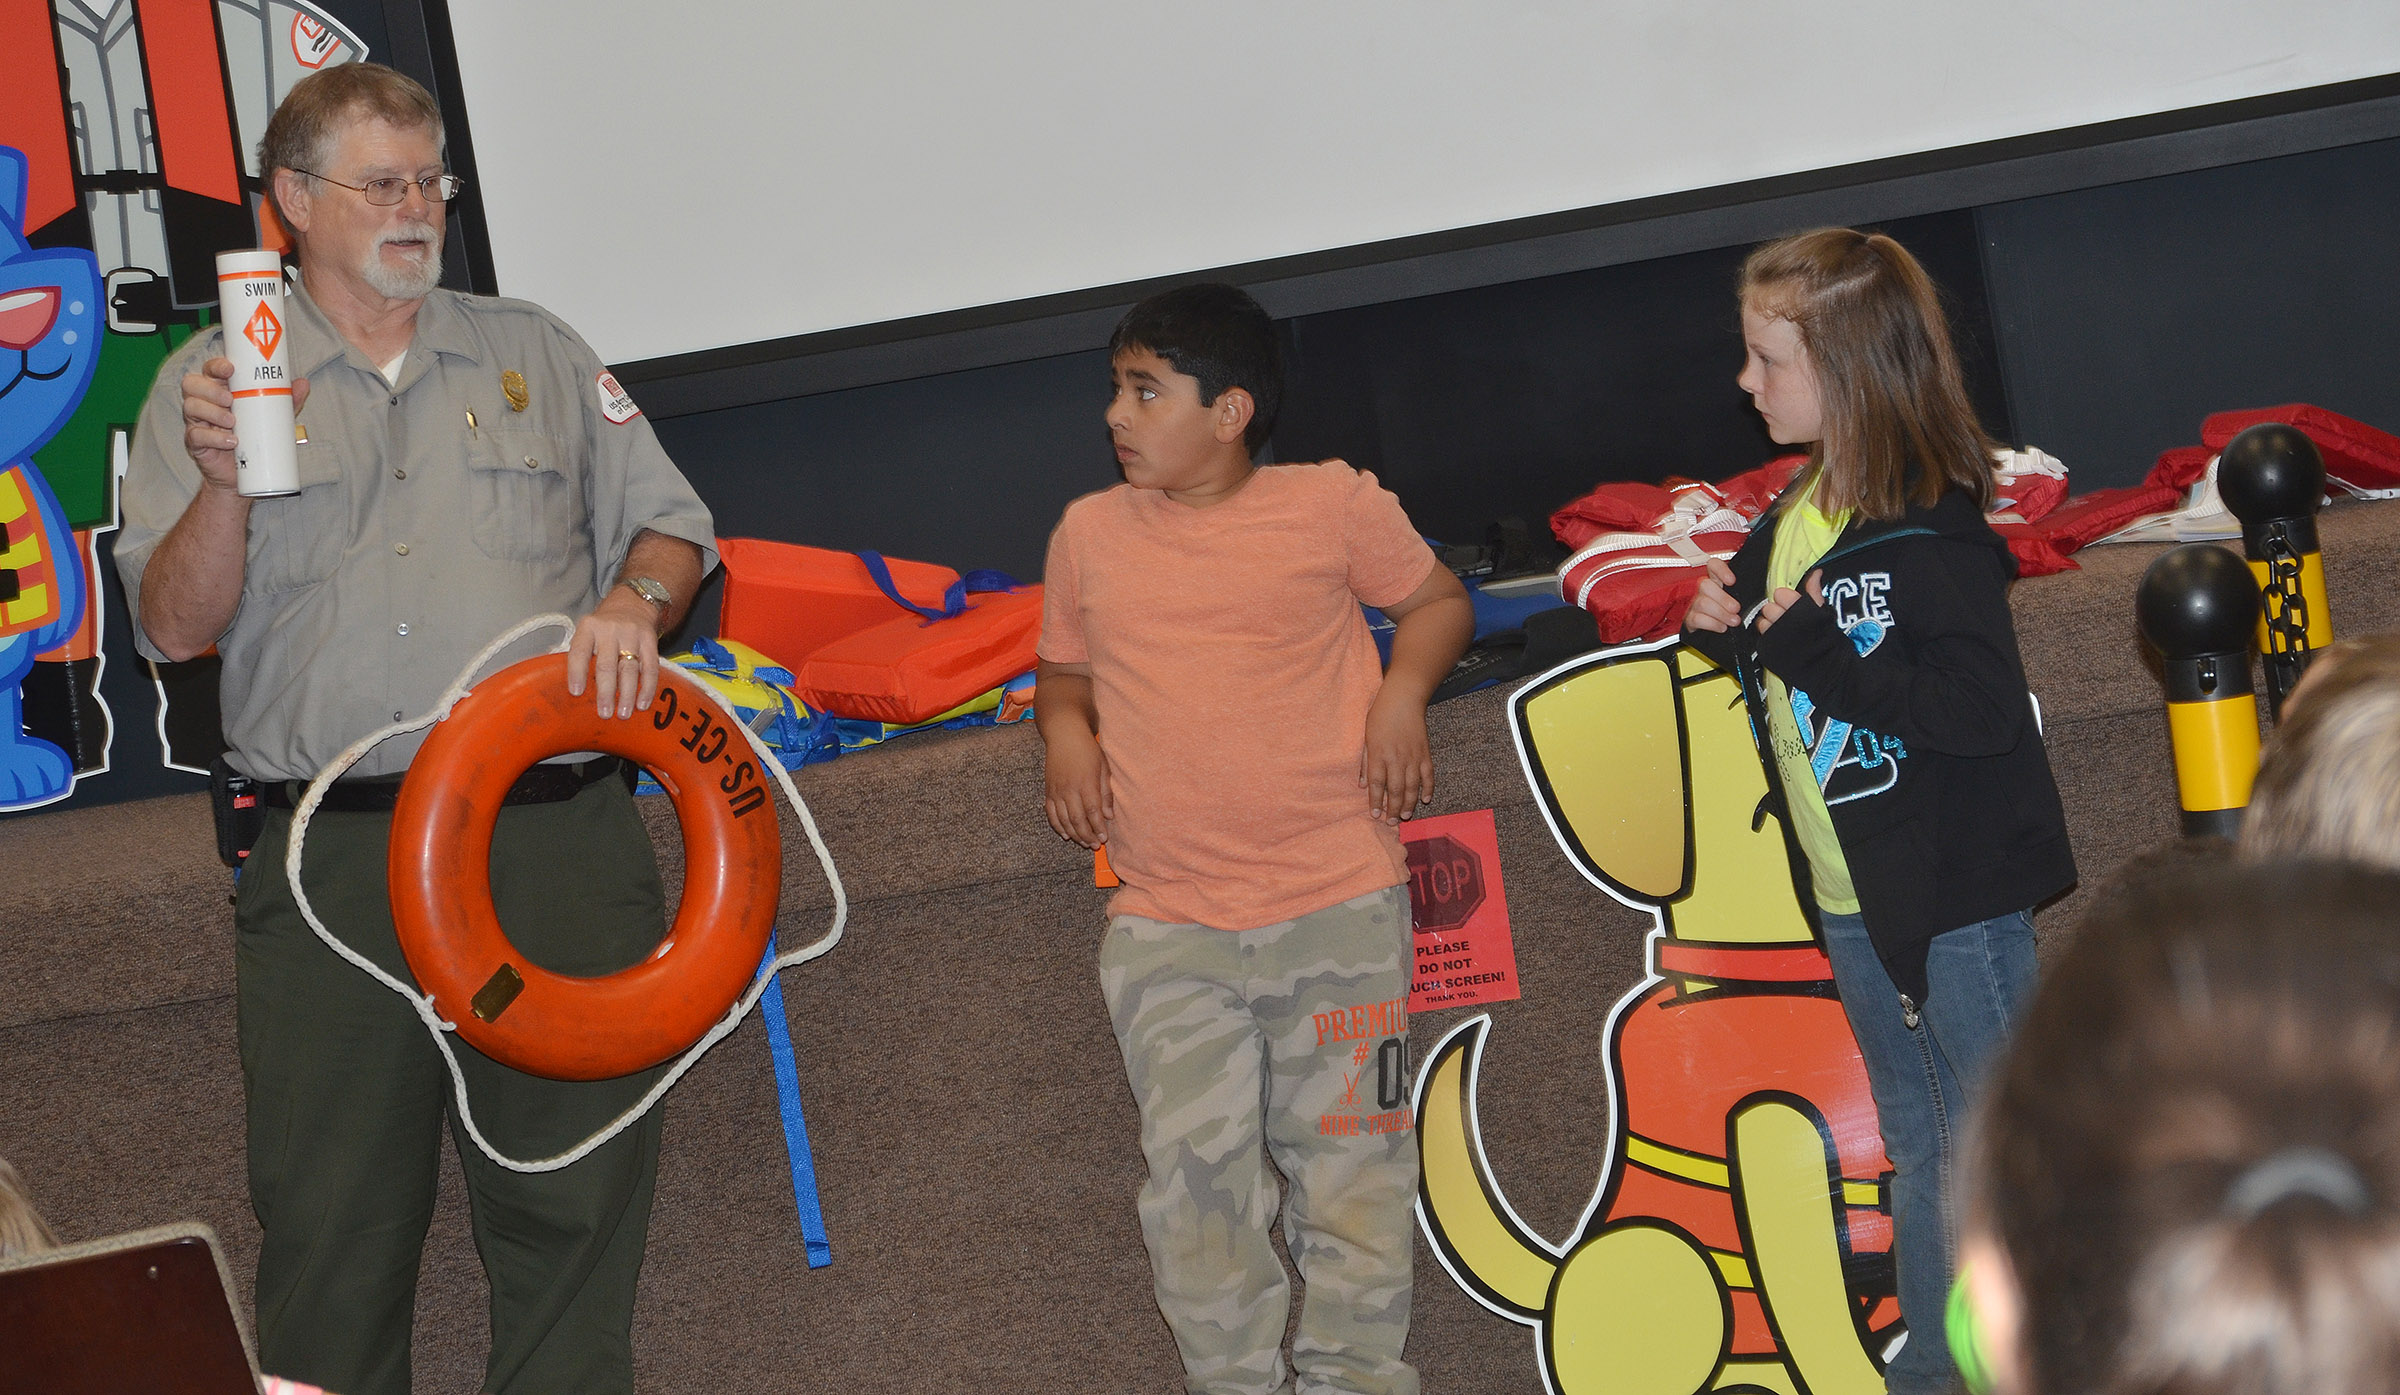 Park Ranger David Goode talks to CES third-graders about other equipment that can keep people safe in the water. Cody Tamez, center, and Jaylen Clark volunteered to try on life jackets to see how they are supposed to fit.